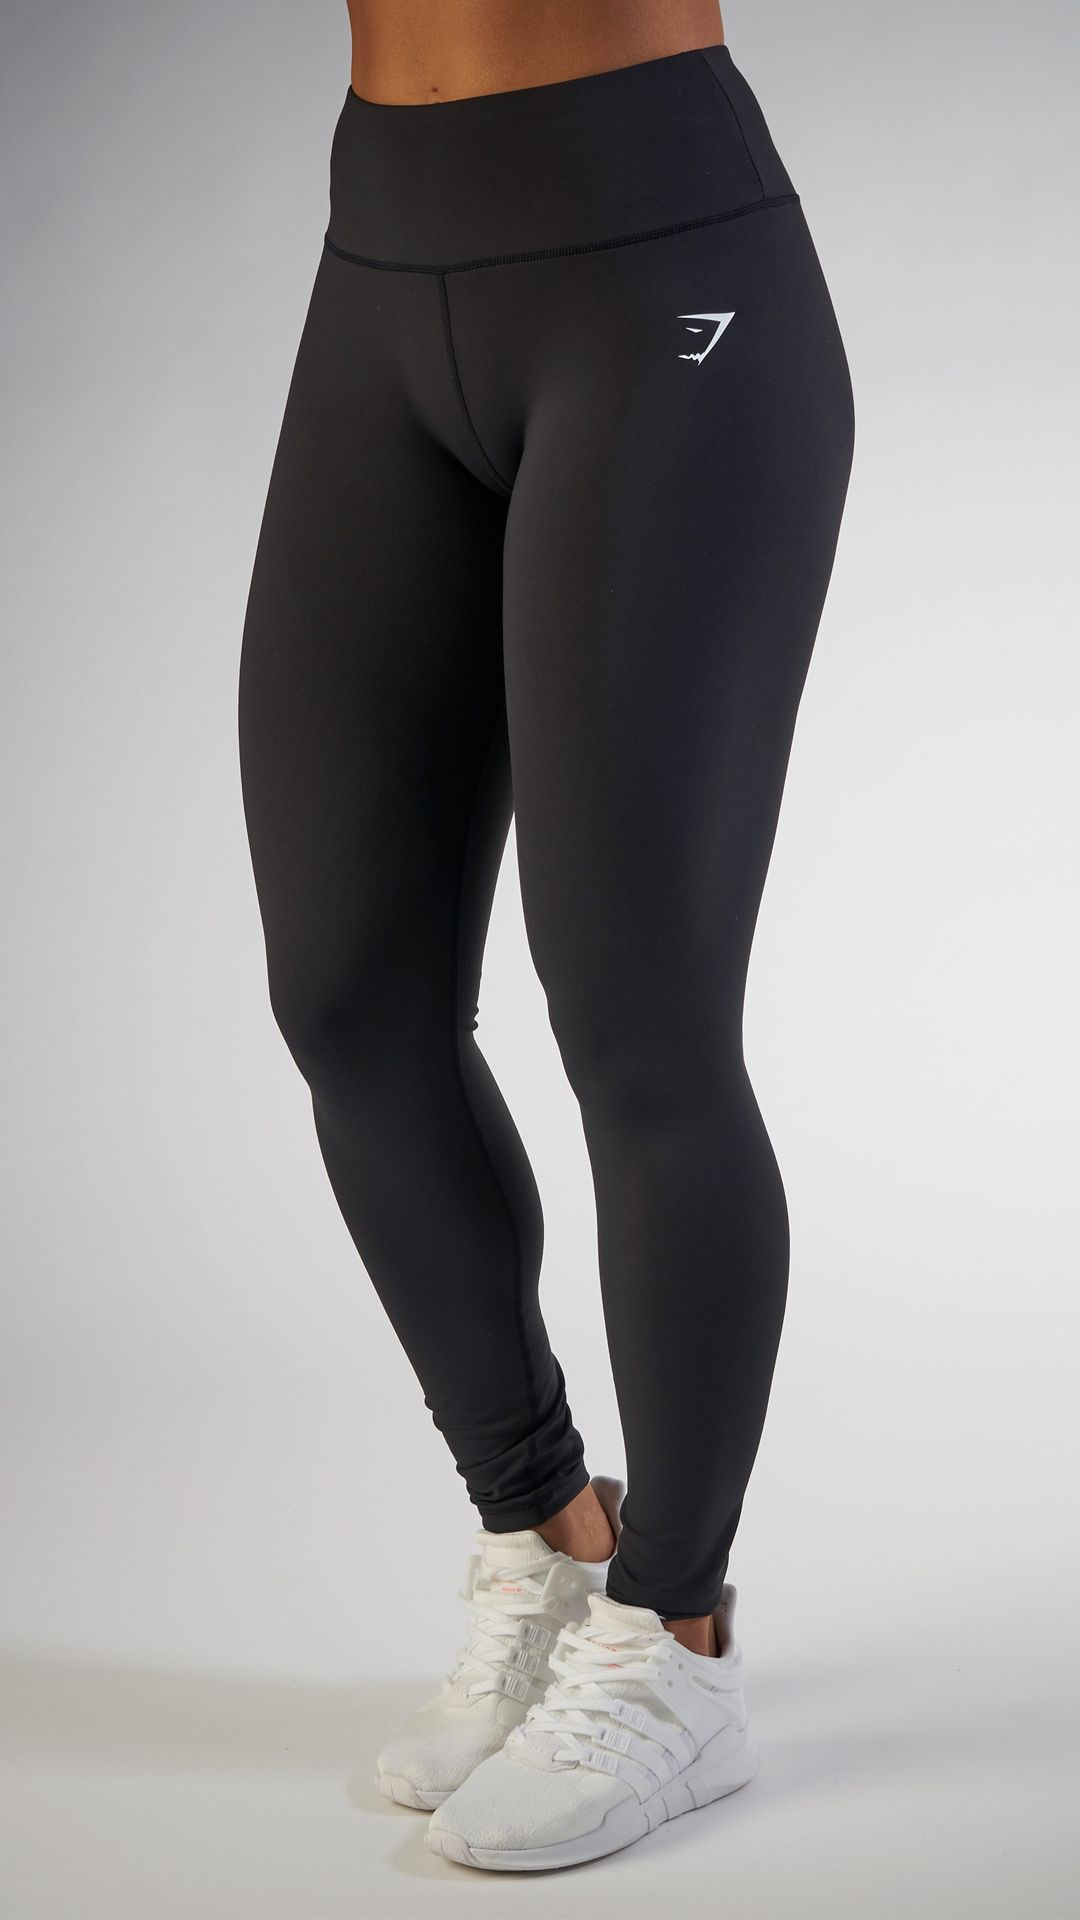 good looking save up to 80% san francisco Give your legs their most comfortable workout yet. The ...